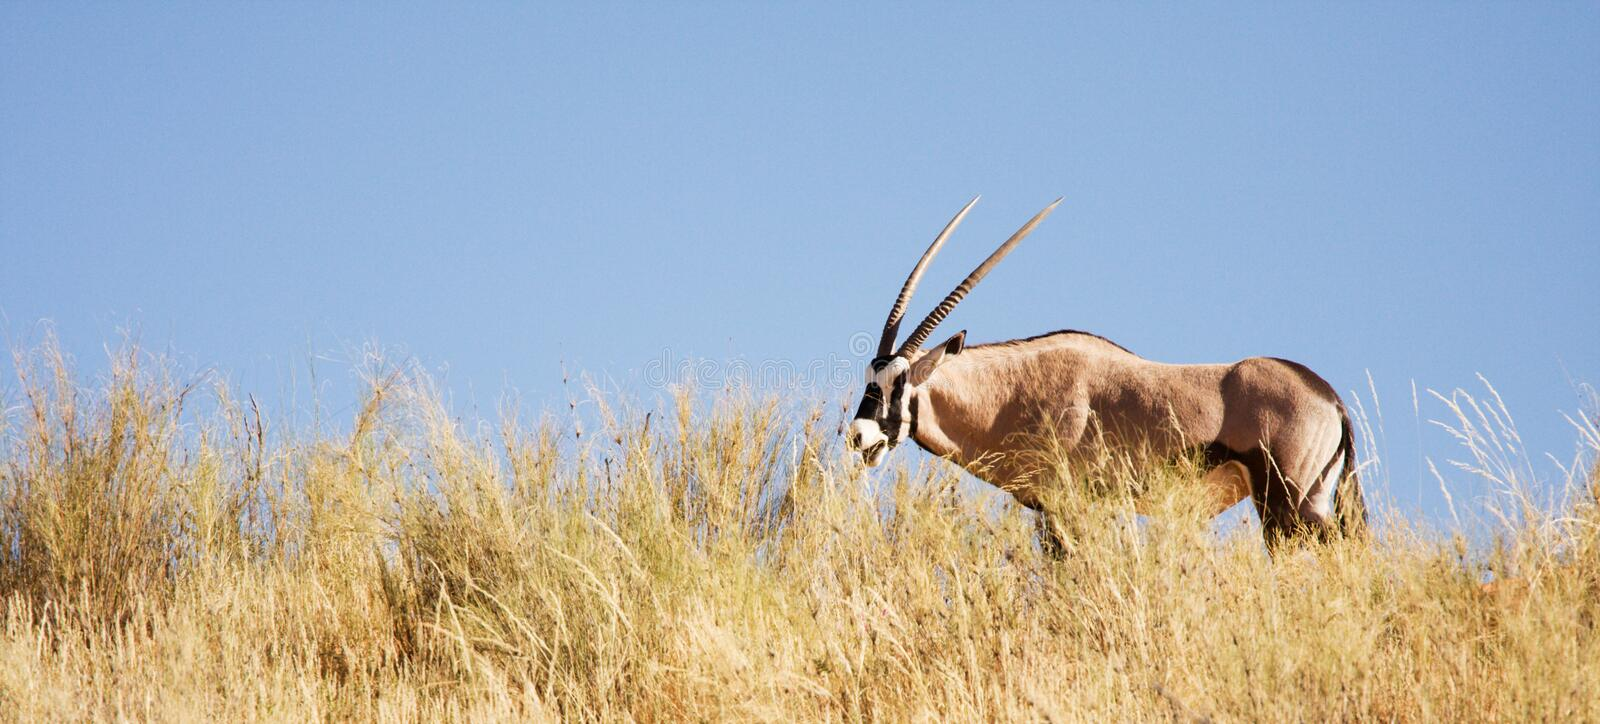 gemsbok d'antilope frôlant kalahari photo libre de droits